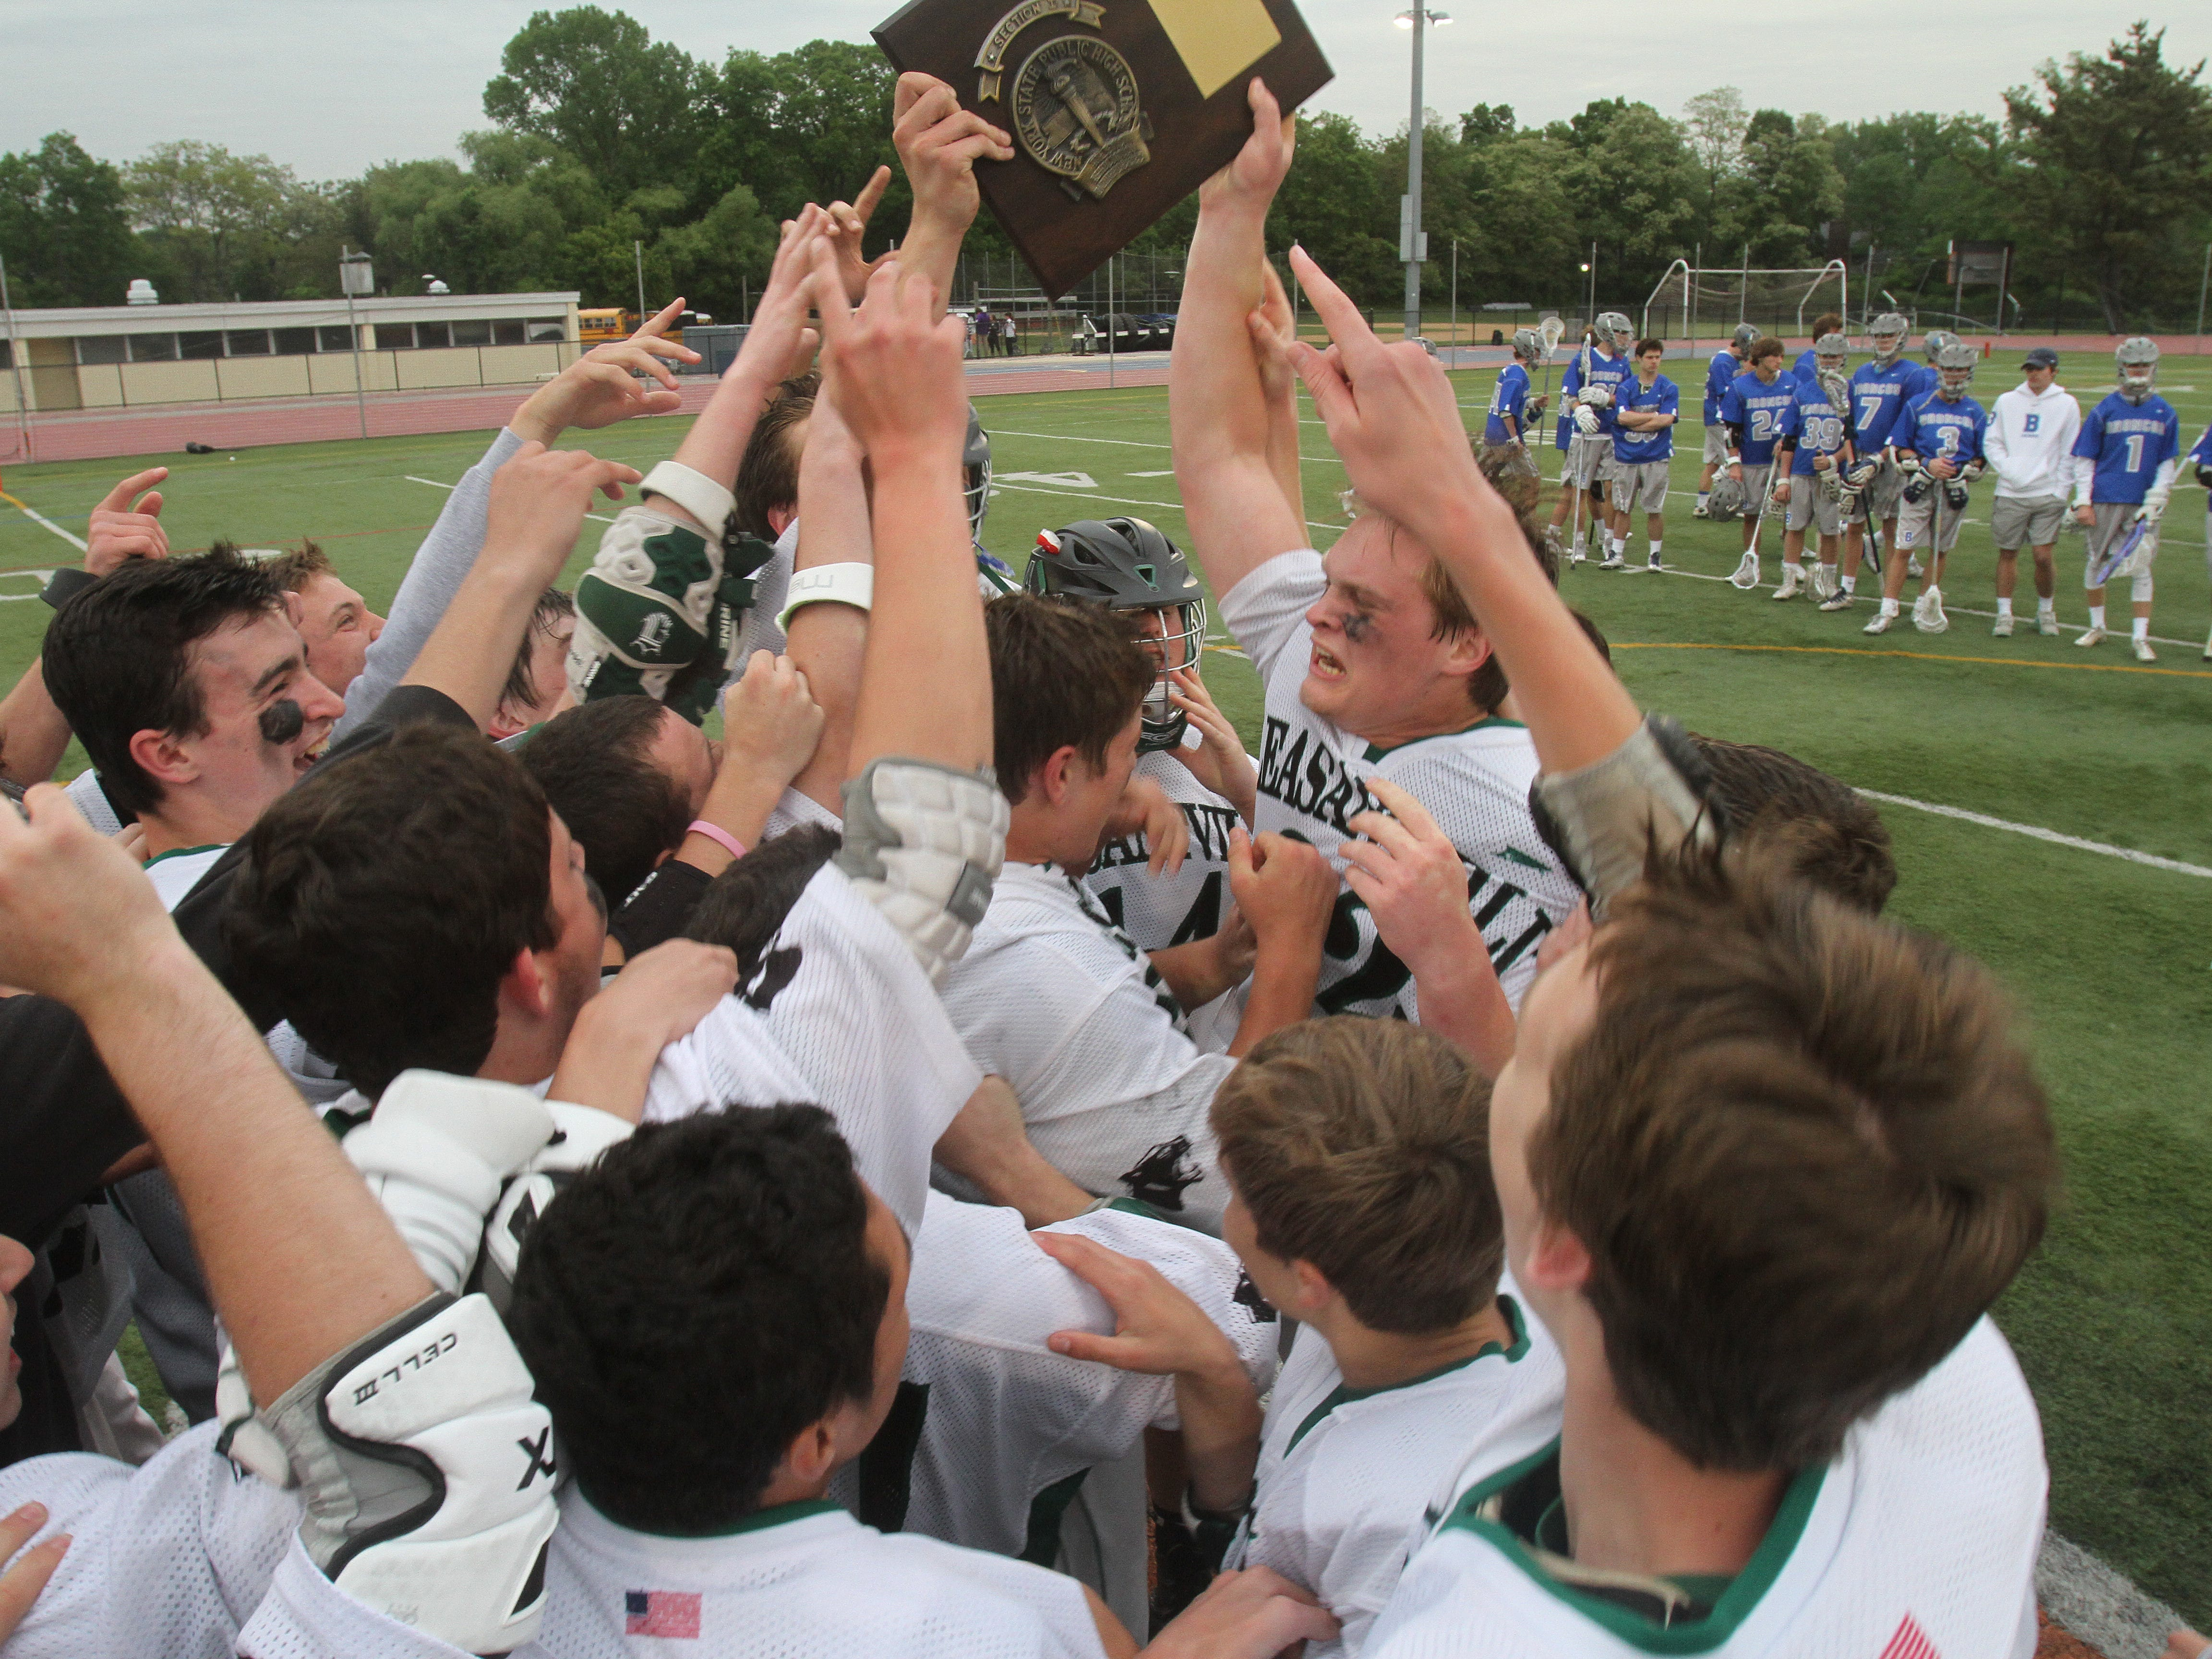 Pleasantville players celebrate their 9-7 victory over defending state champs Bronxville in Section 1 boys lacrosse championship game at White Plains High School May 21, 2015.